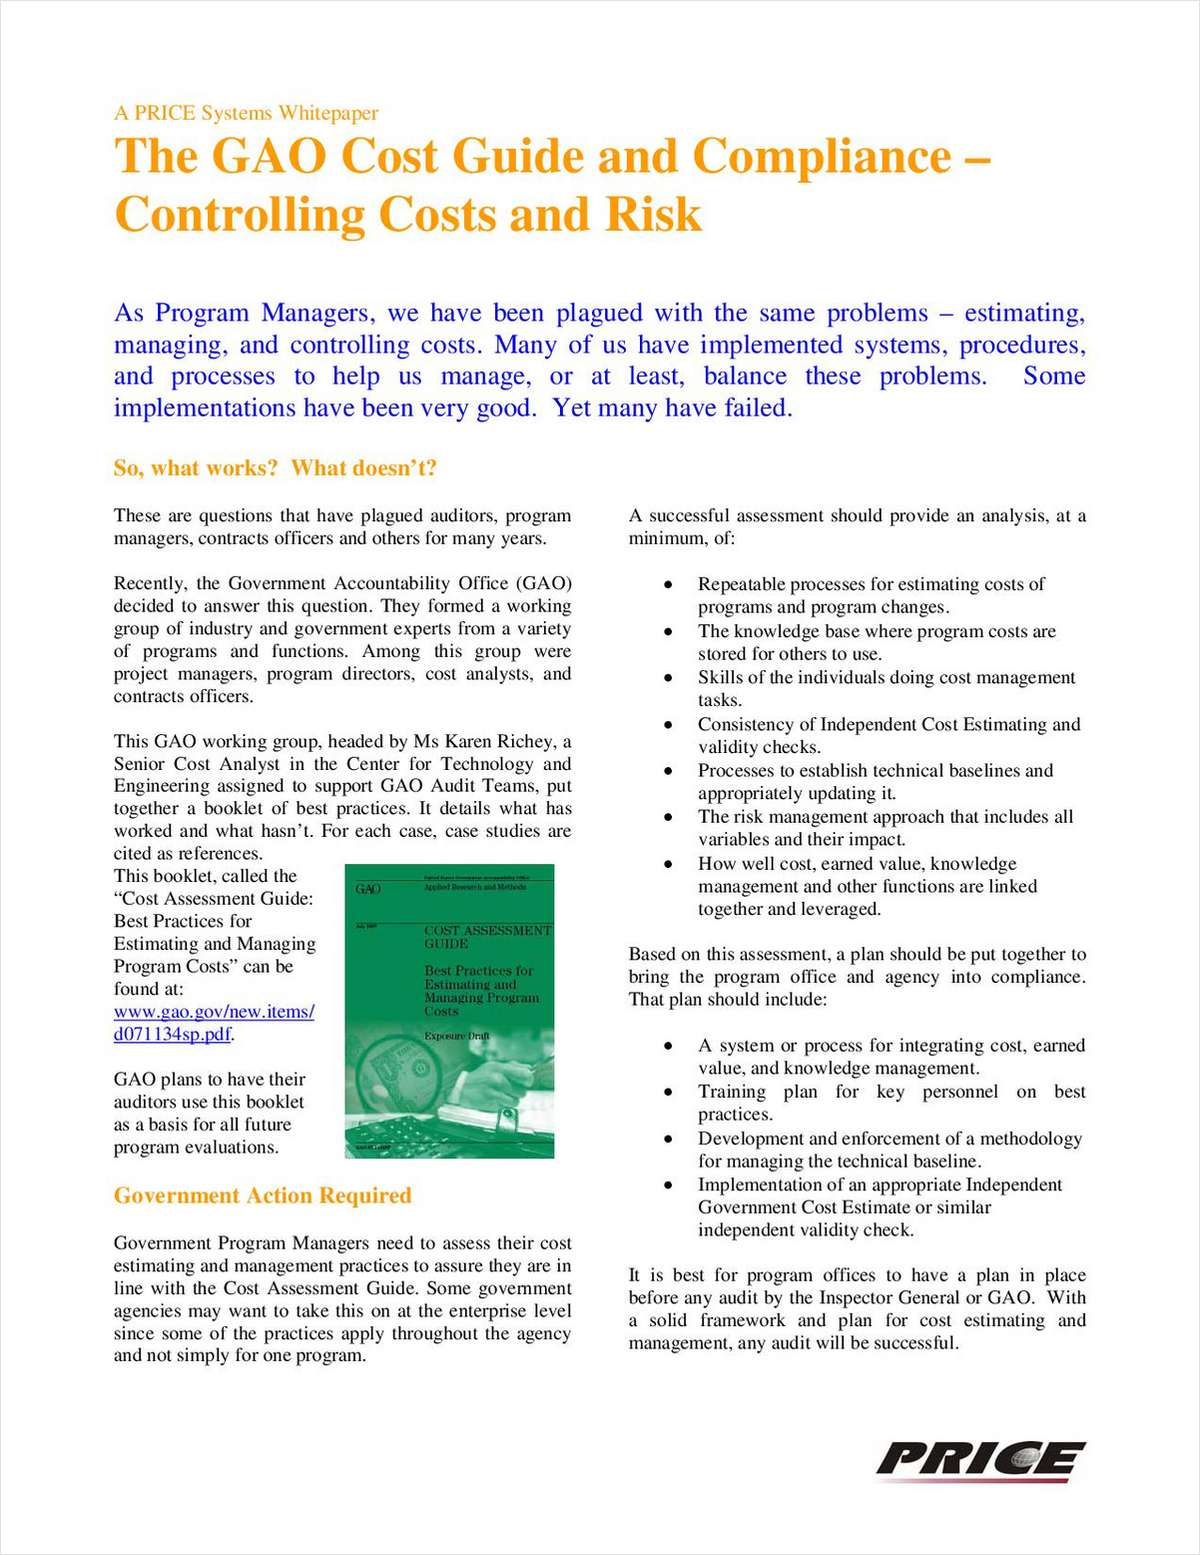 The GAO Cost Guide and Compliance – Controlling Costs and Risk